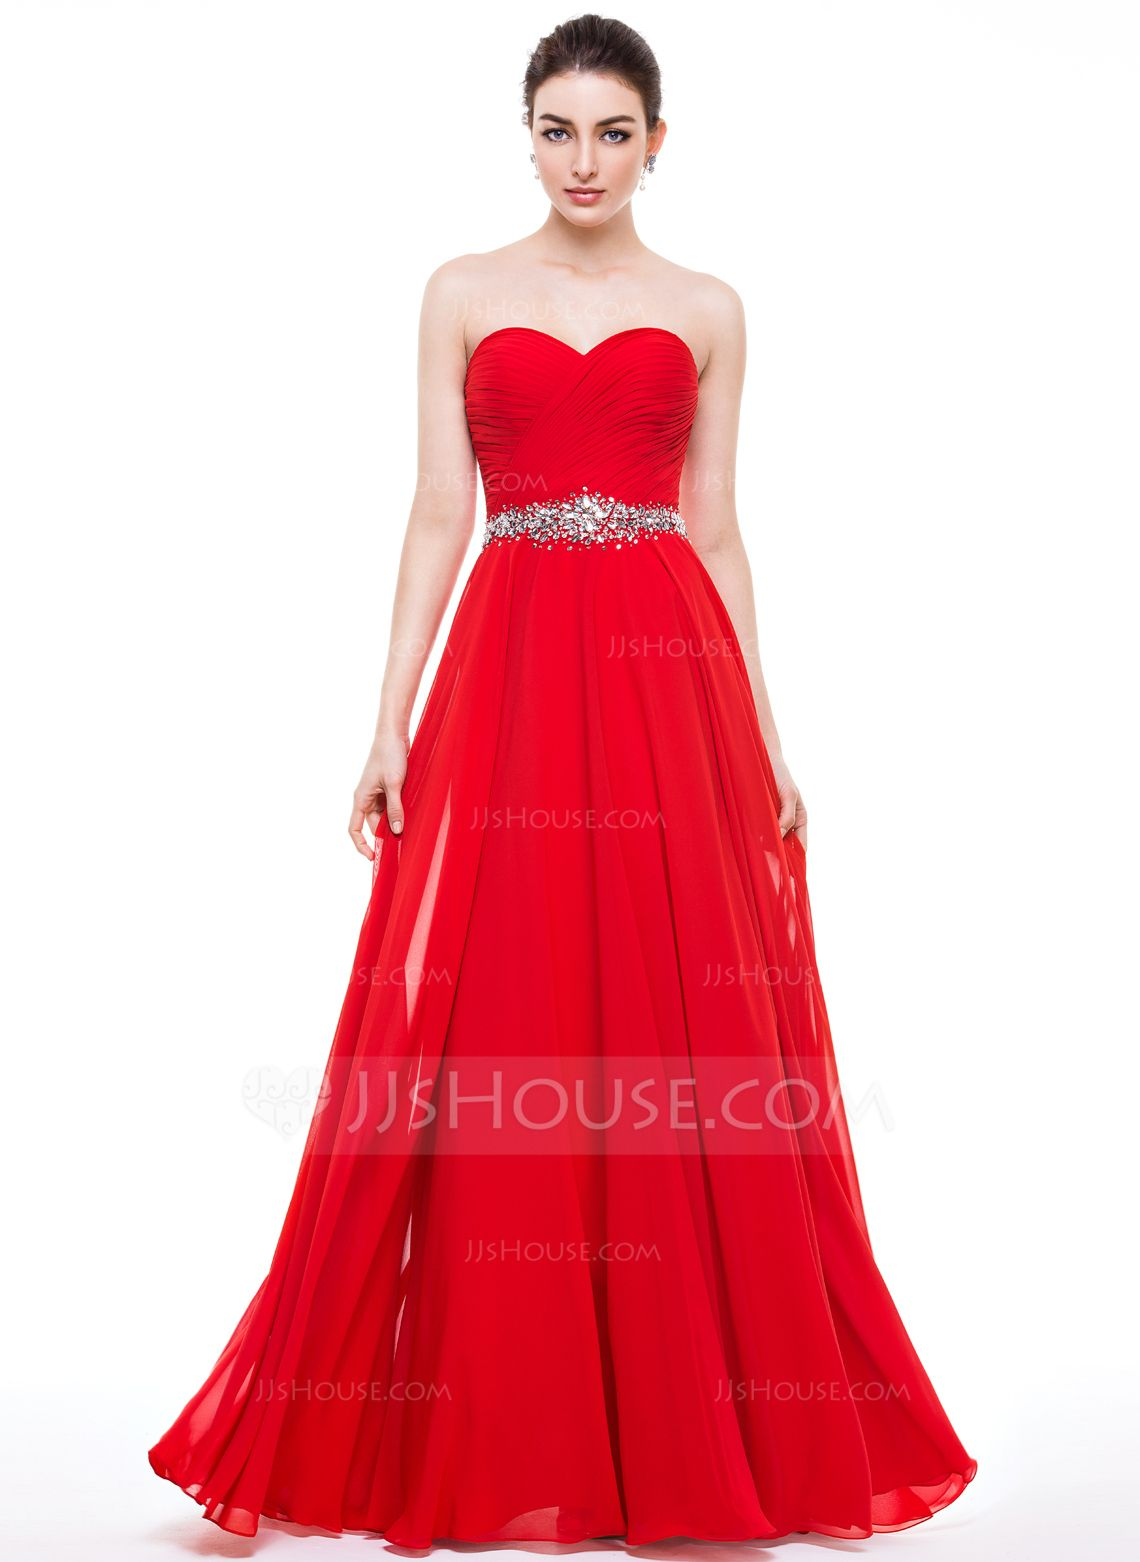 5ab19245900f8 A-Line/Princess Sweetheart Floor-Length Chiffon Prom Dress With Ruffle  Beading Sequins (018056799) - JJsHouse